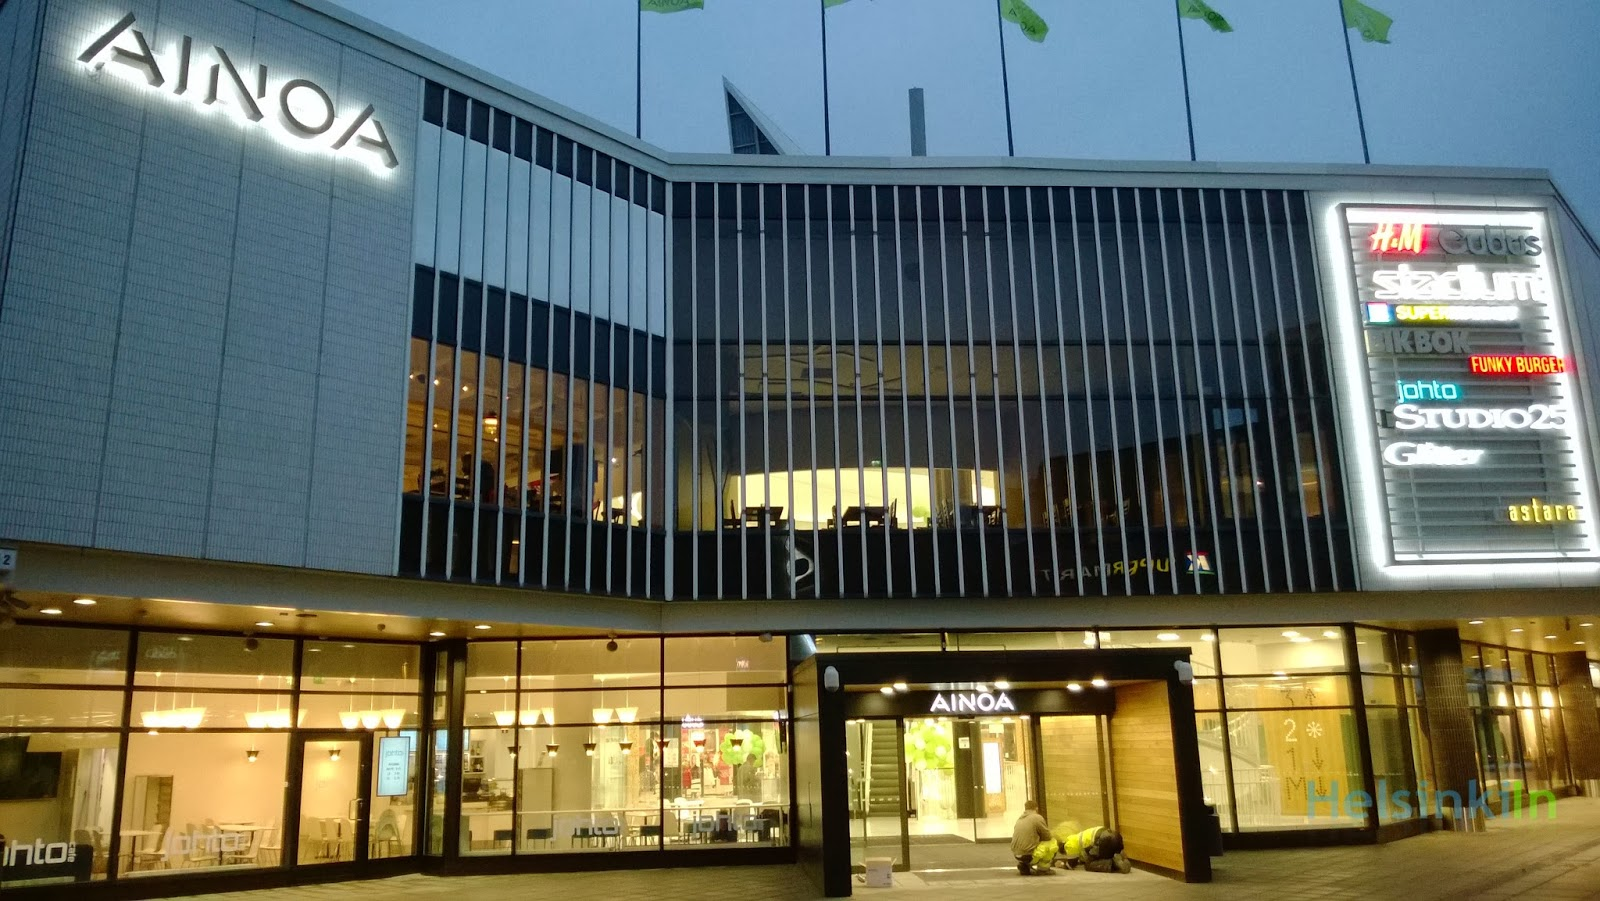 Reviews about the recreation center Tapiola 74